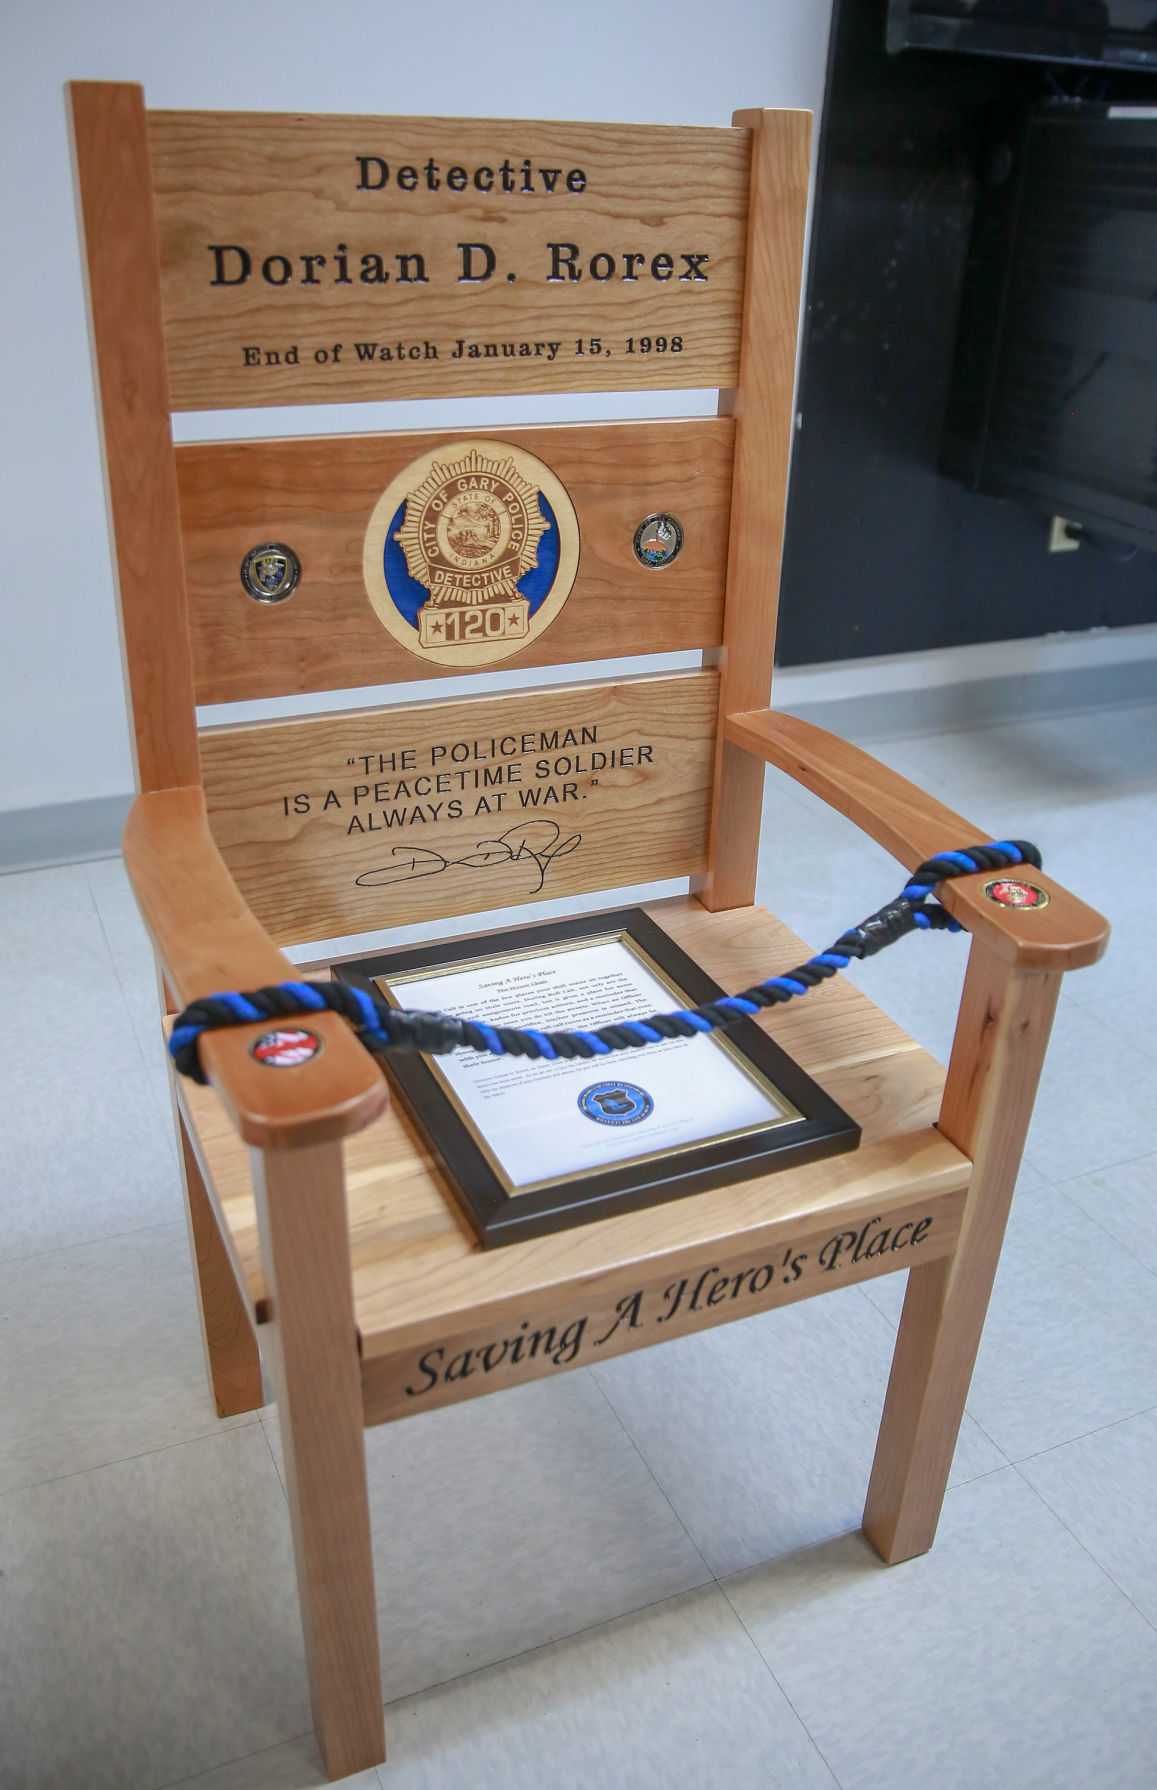 Honor Chair recalls ultimate sacrifice of 'our hero' | News